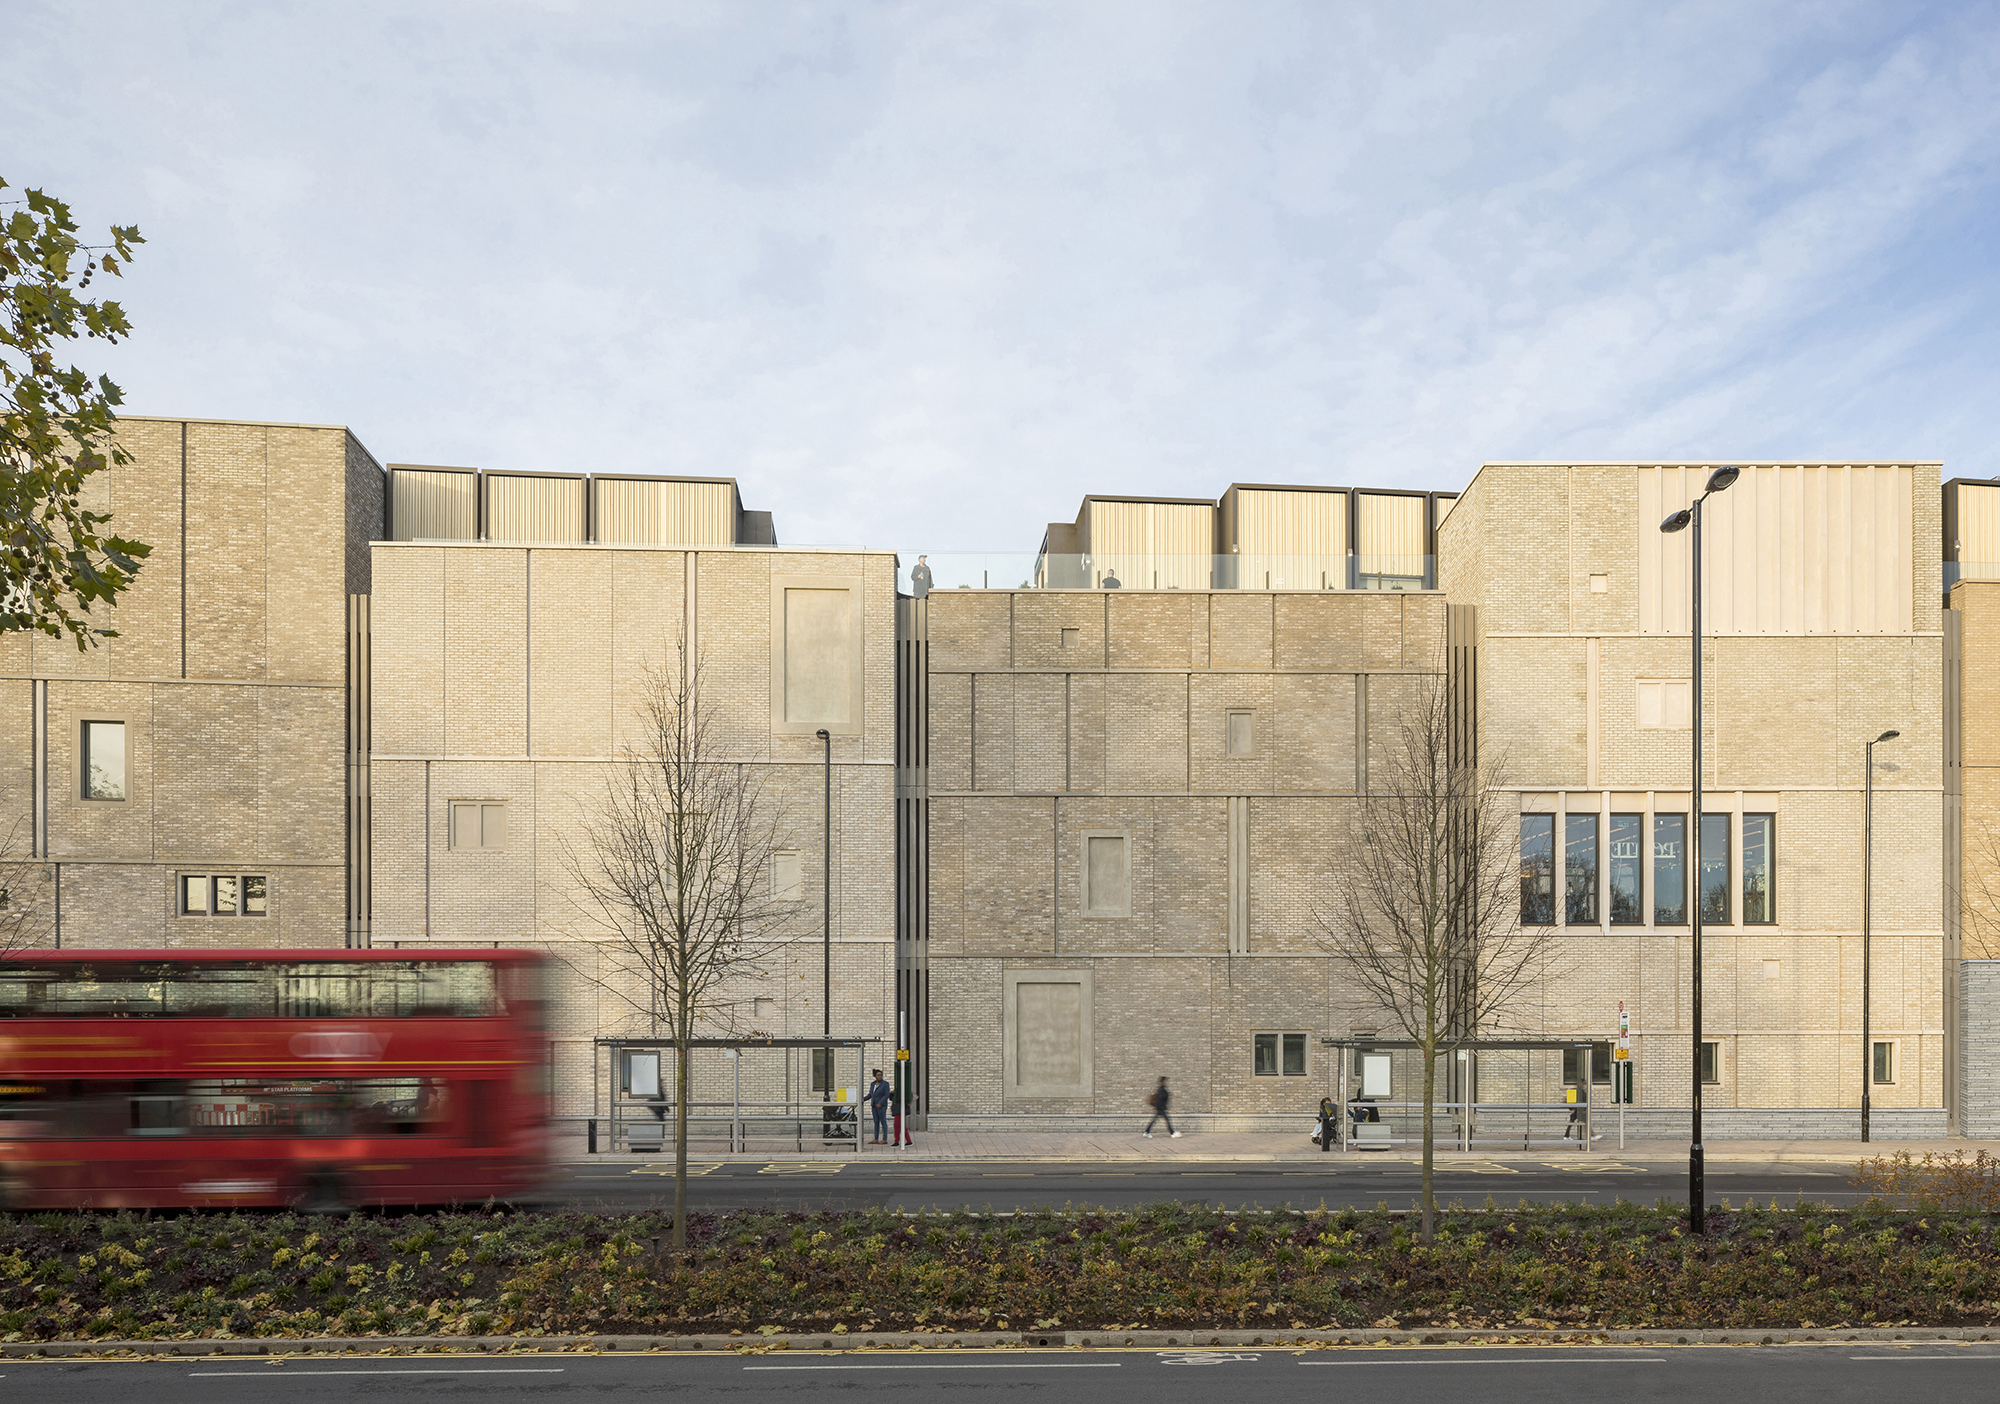 Westgate Centre Oxford could be named UK's best new building - do you agree?